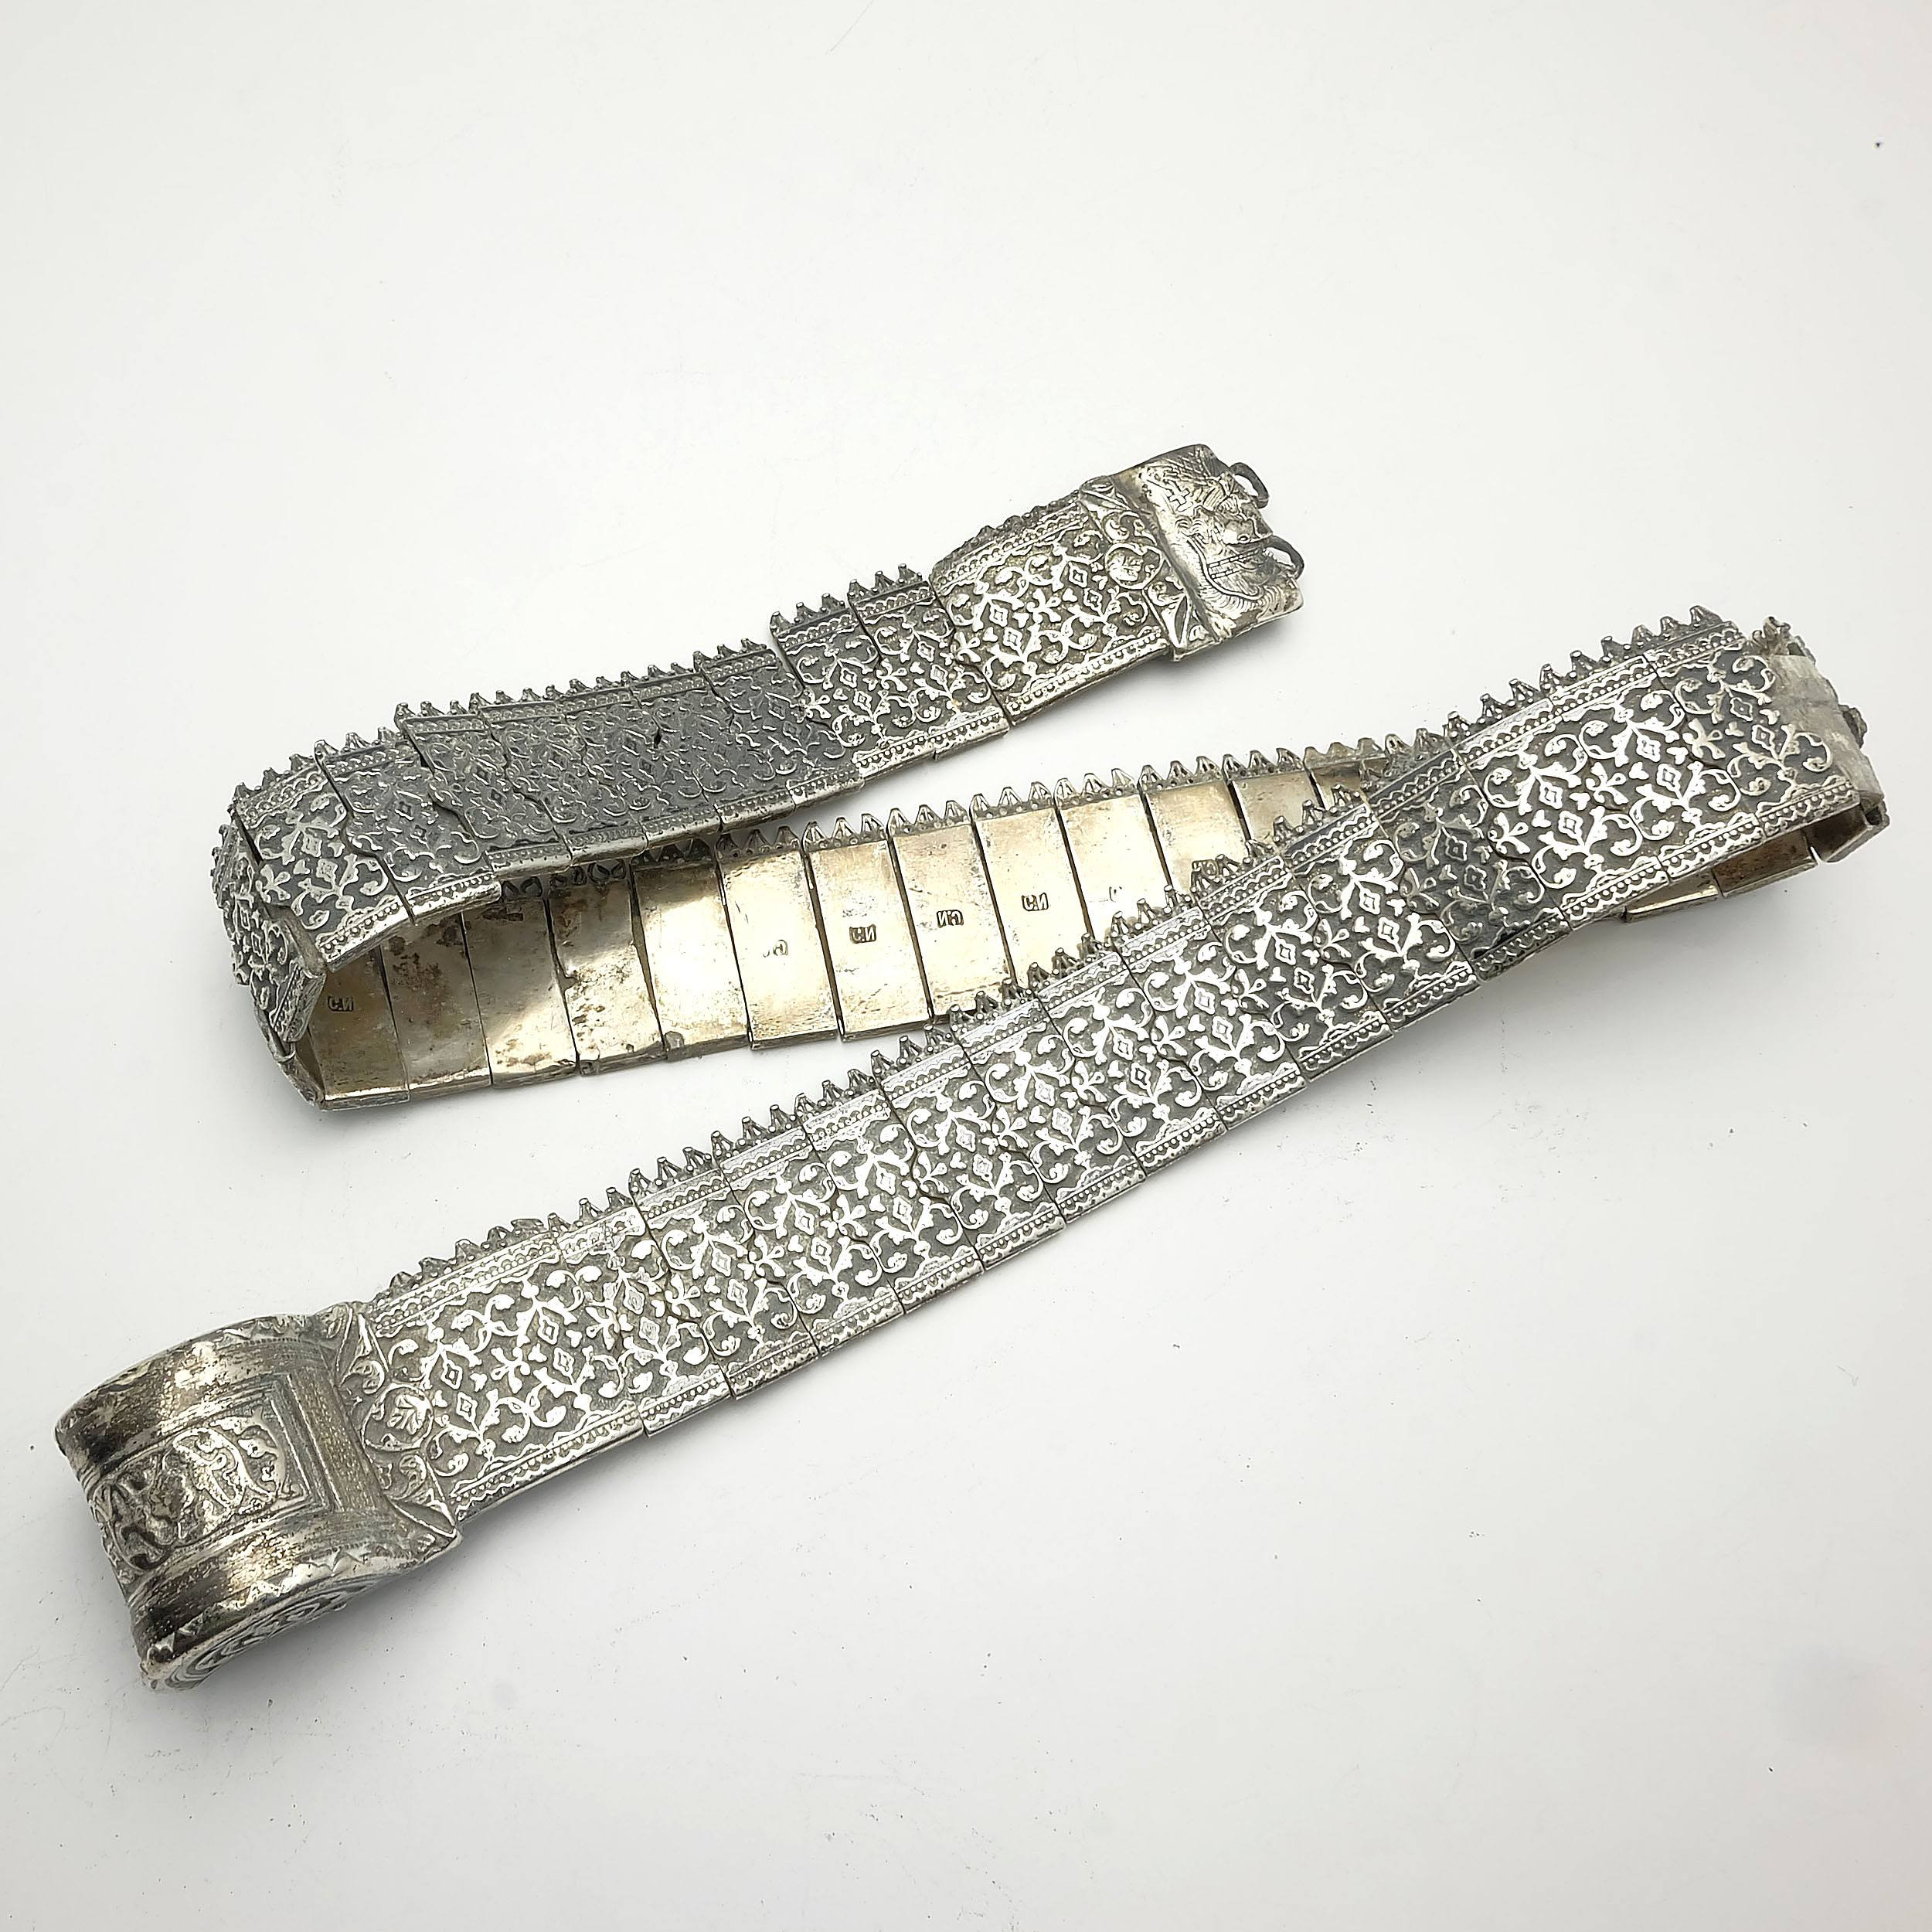 'Heavy Caucasian Silver Belt with Cast Foliate Relief Panel Links, 693g, Hallmarked in Cyrillic C.N, Knights Head and Cross Engraving to Buckle'